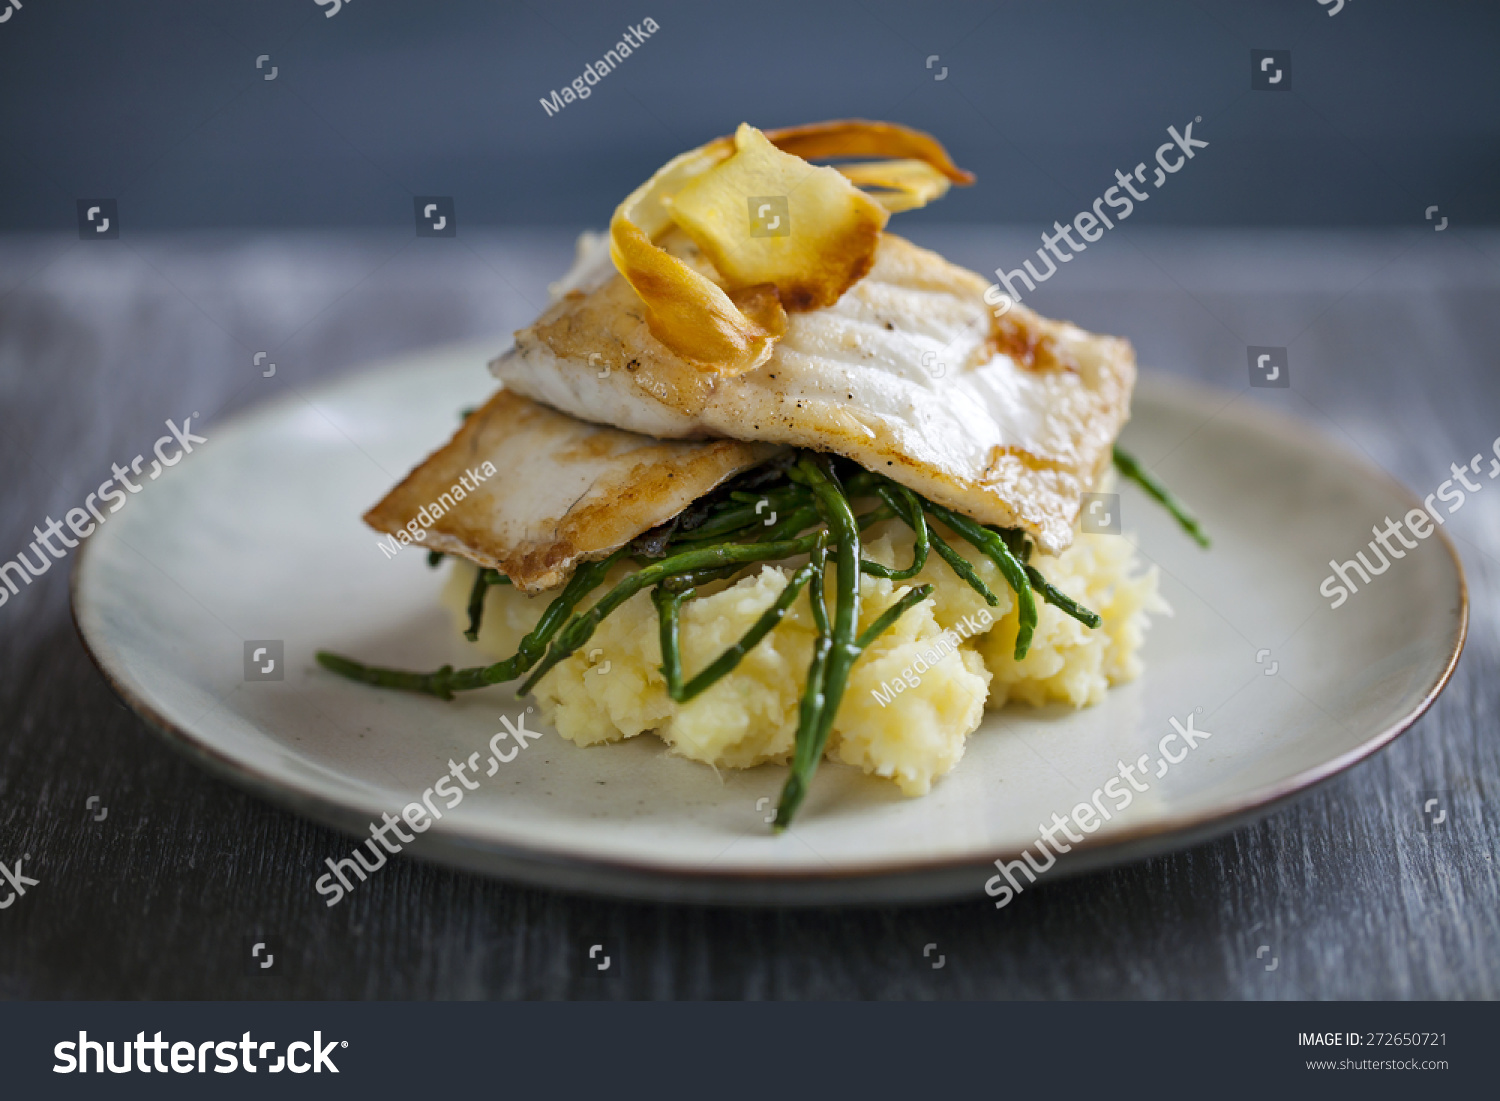 Sea Bass Fillet On Parsnip Mash And Samphire With Parsnip Crisp Stock Photo 272650721 : Shutterstock